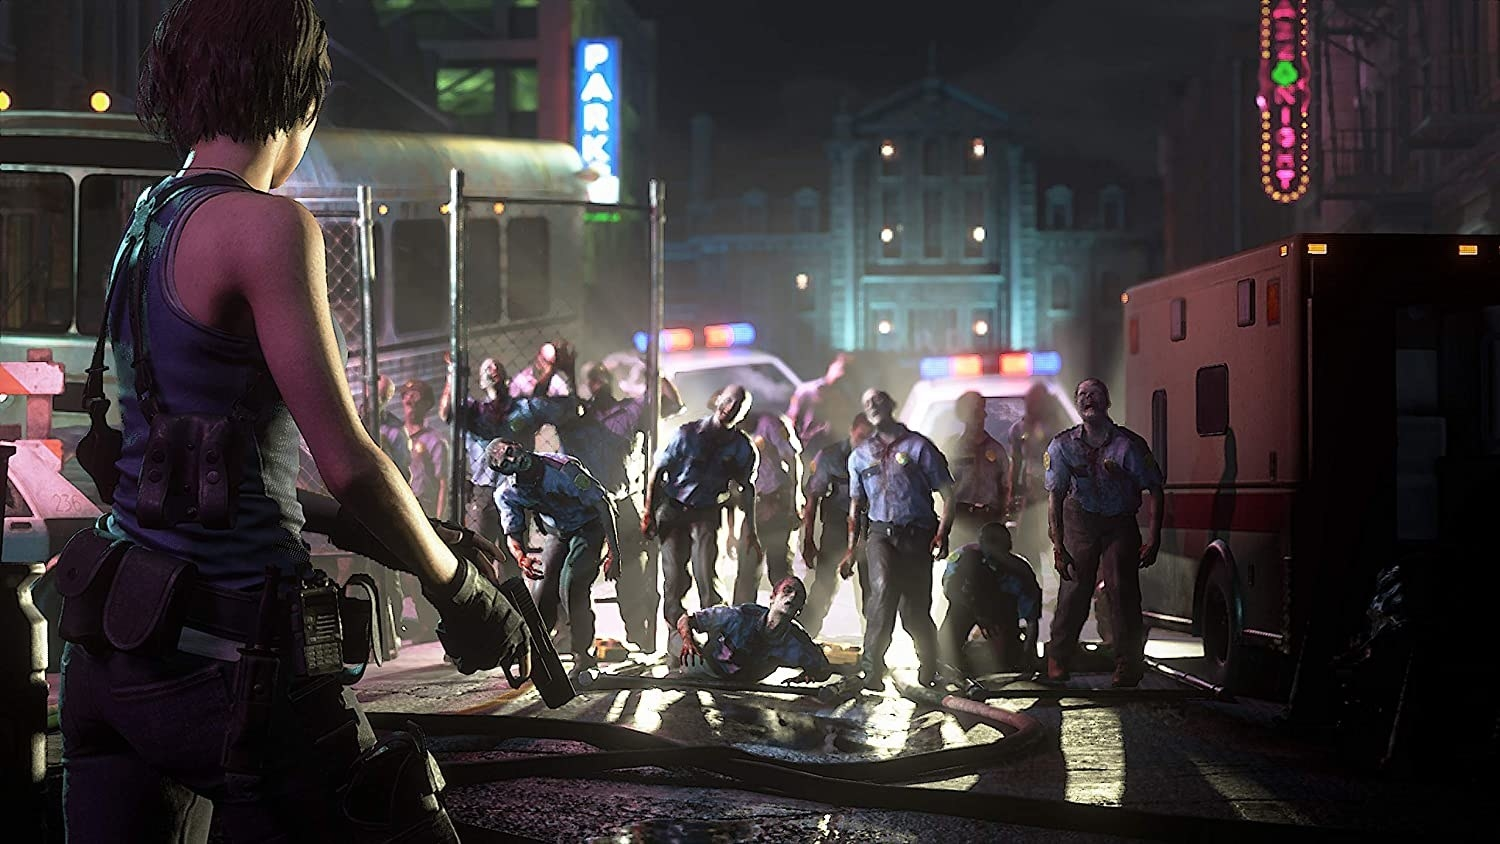 A horde of zombie police officers stumbling in pursuit of Jill